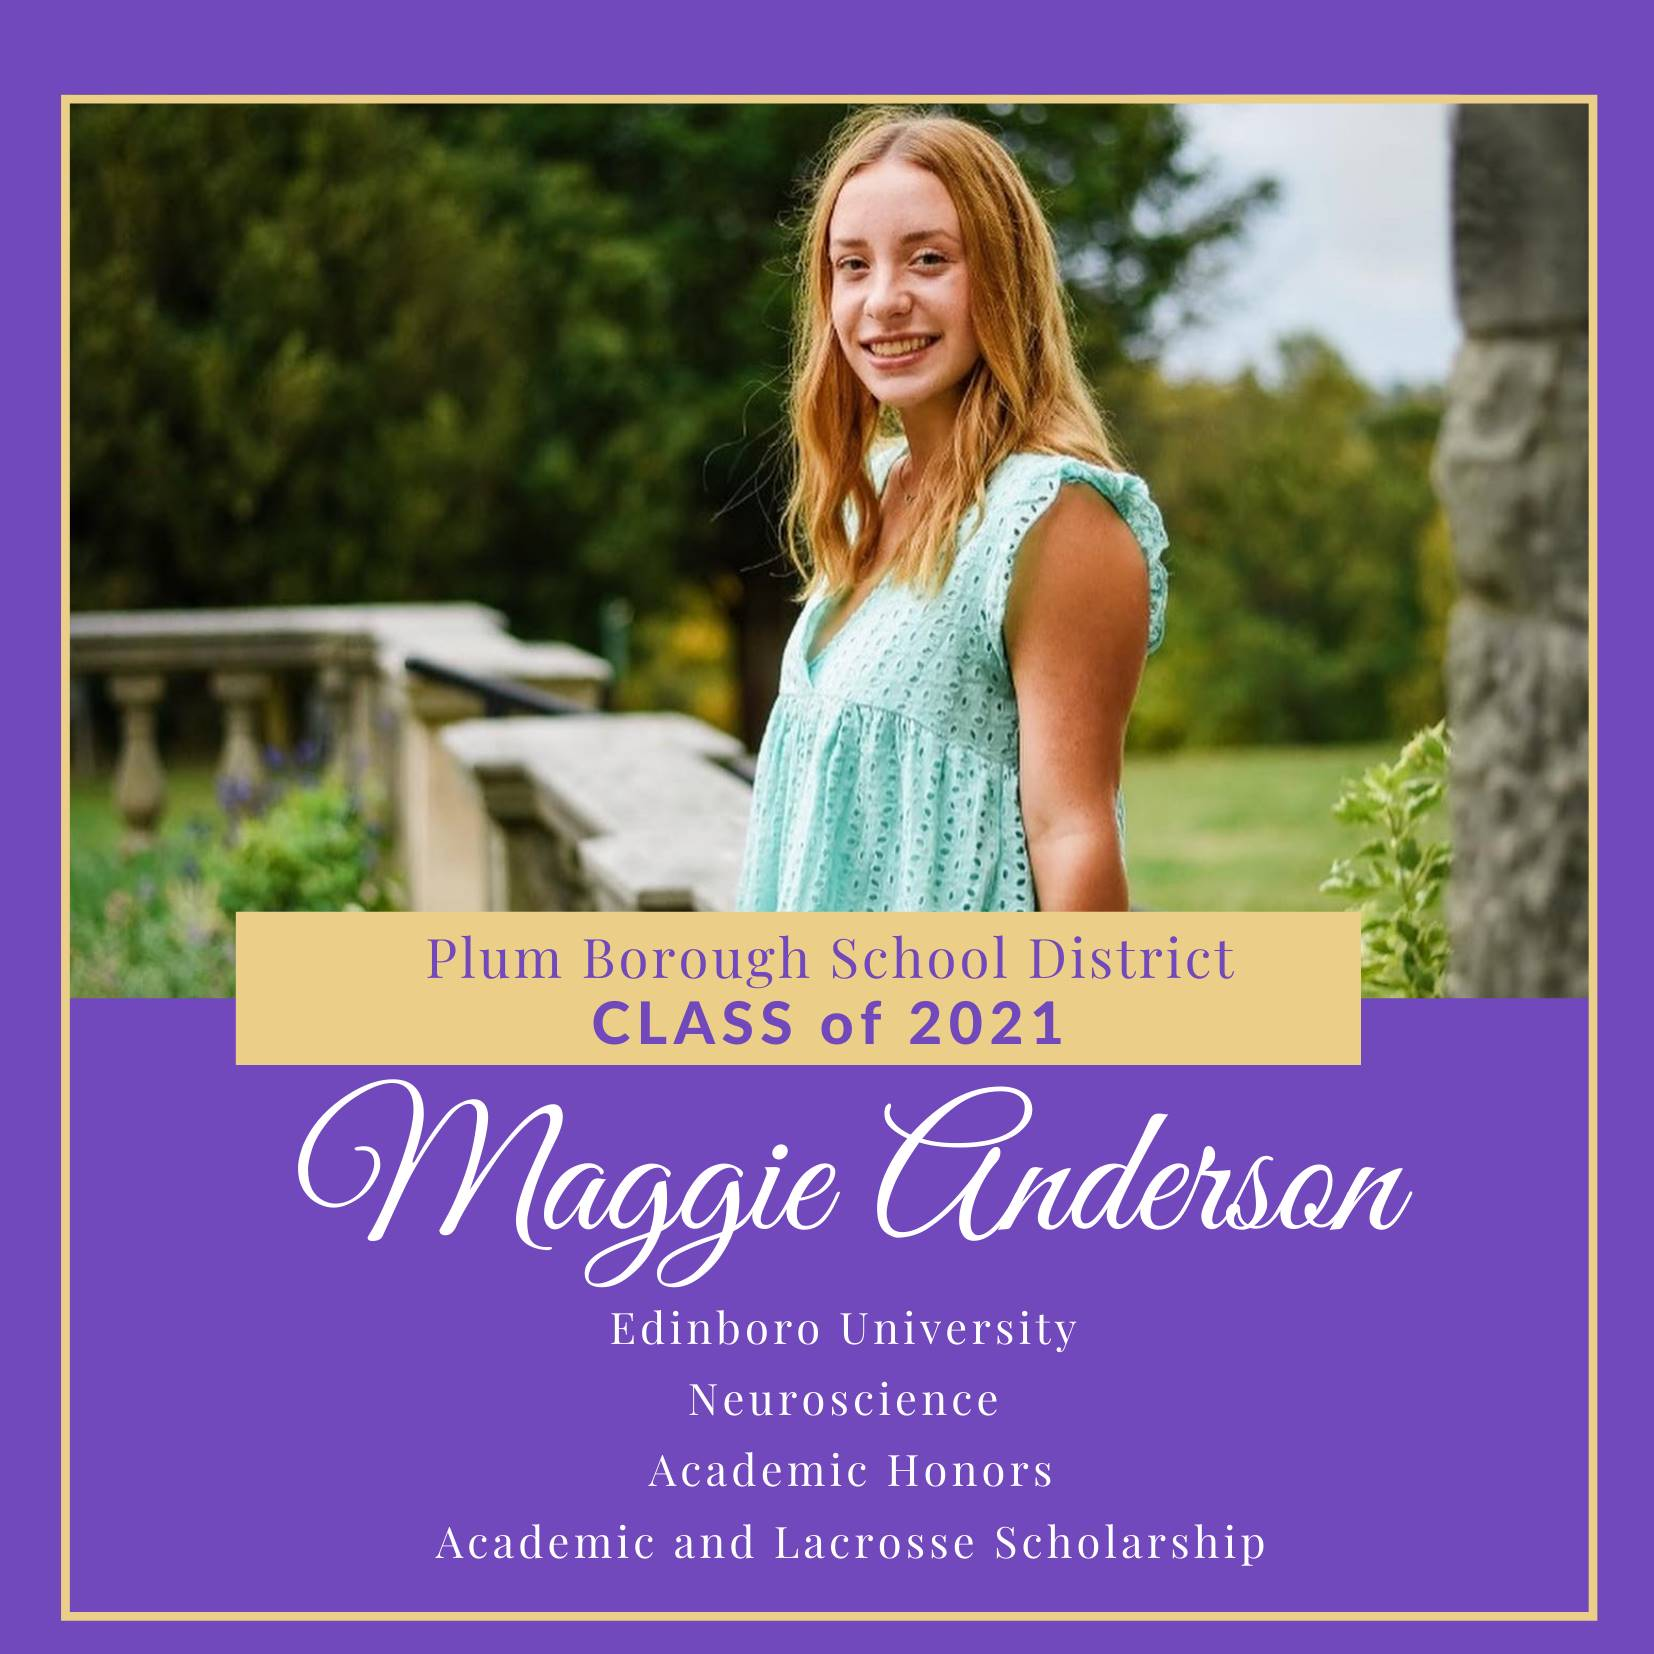 Congratulations to Maggie Anderson, Class of 2021!